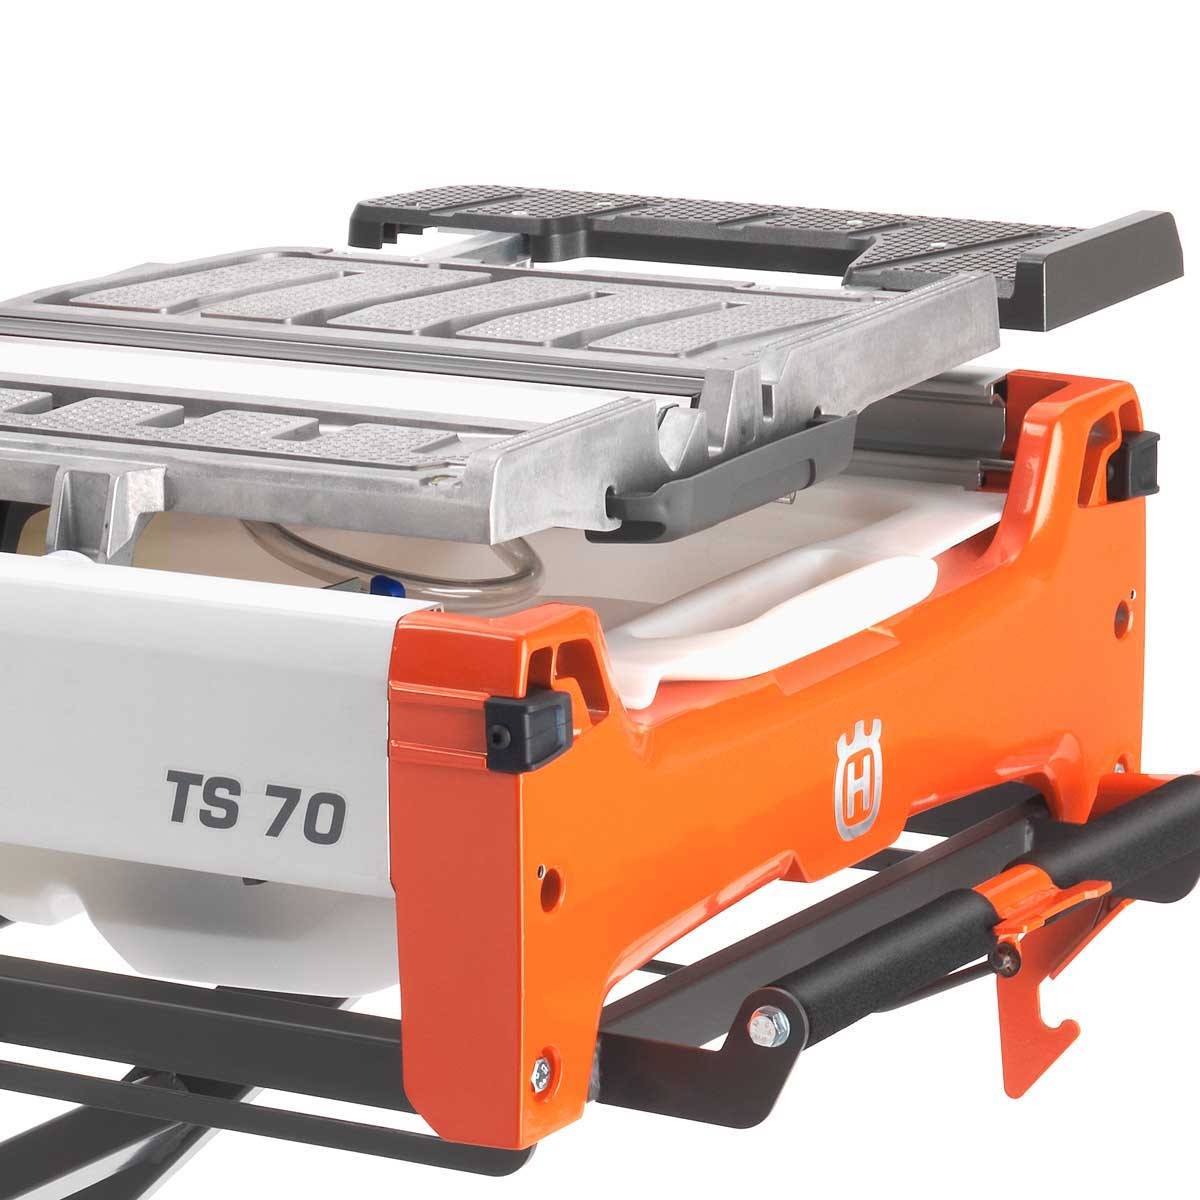 Husqvarna TS70 Tile Wet Saw Contractors Direct